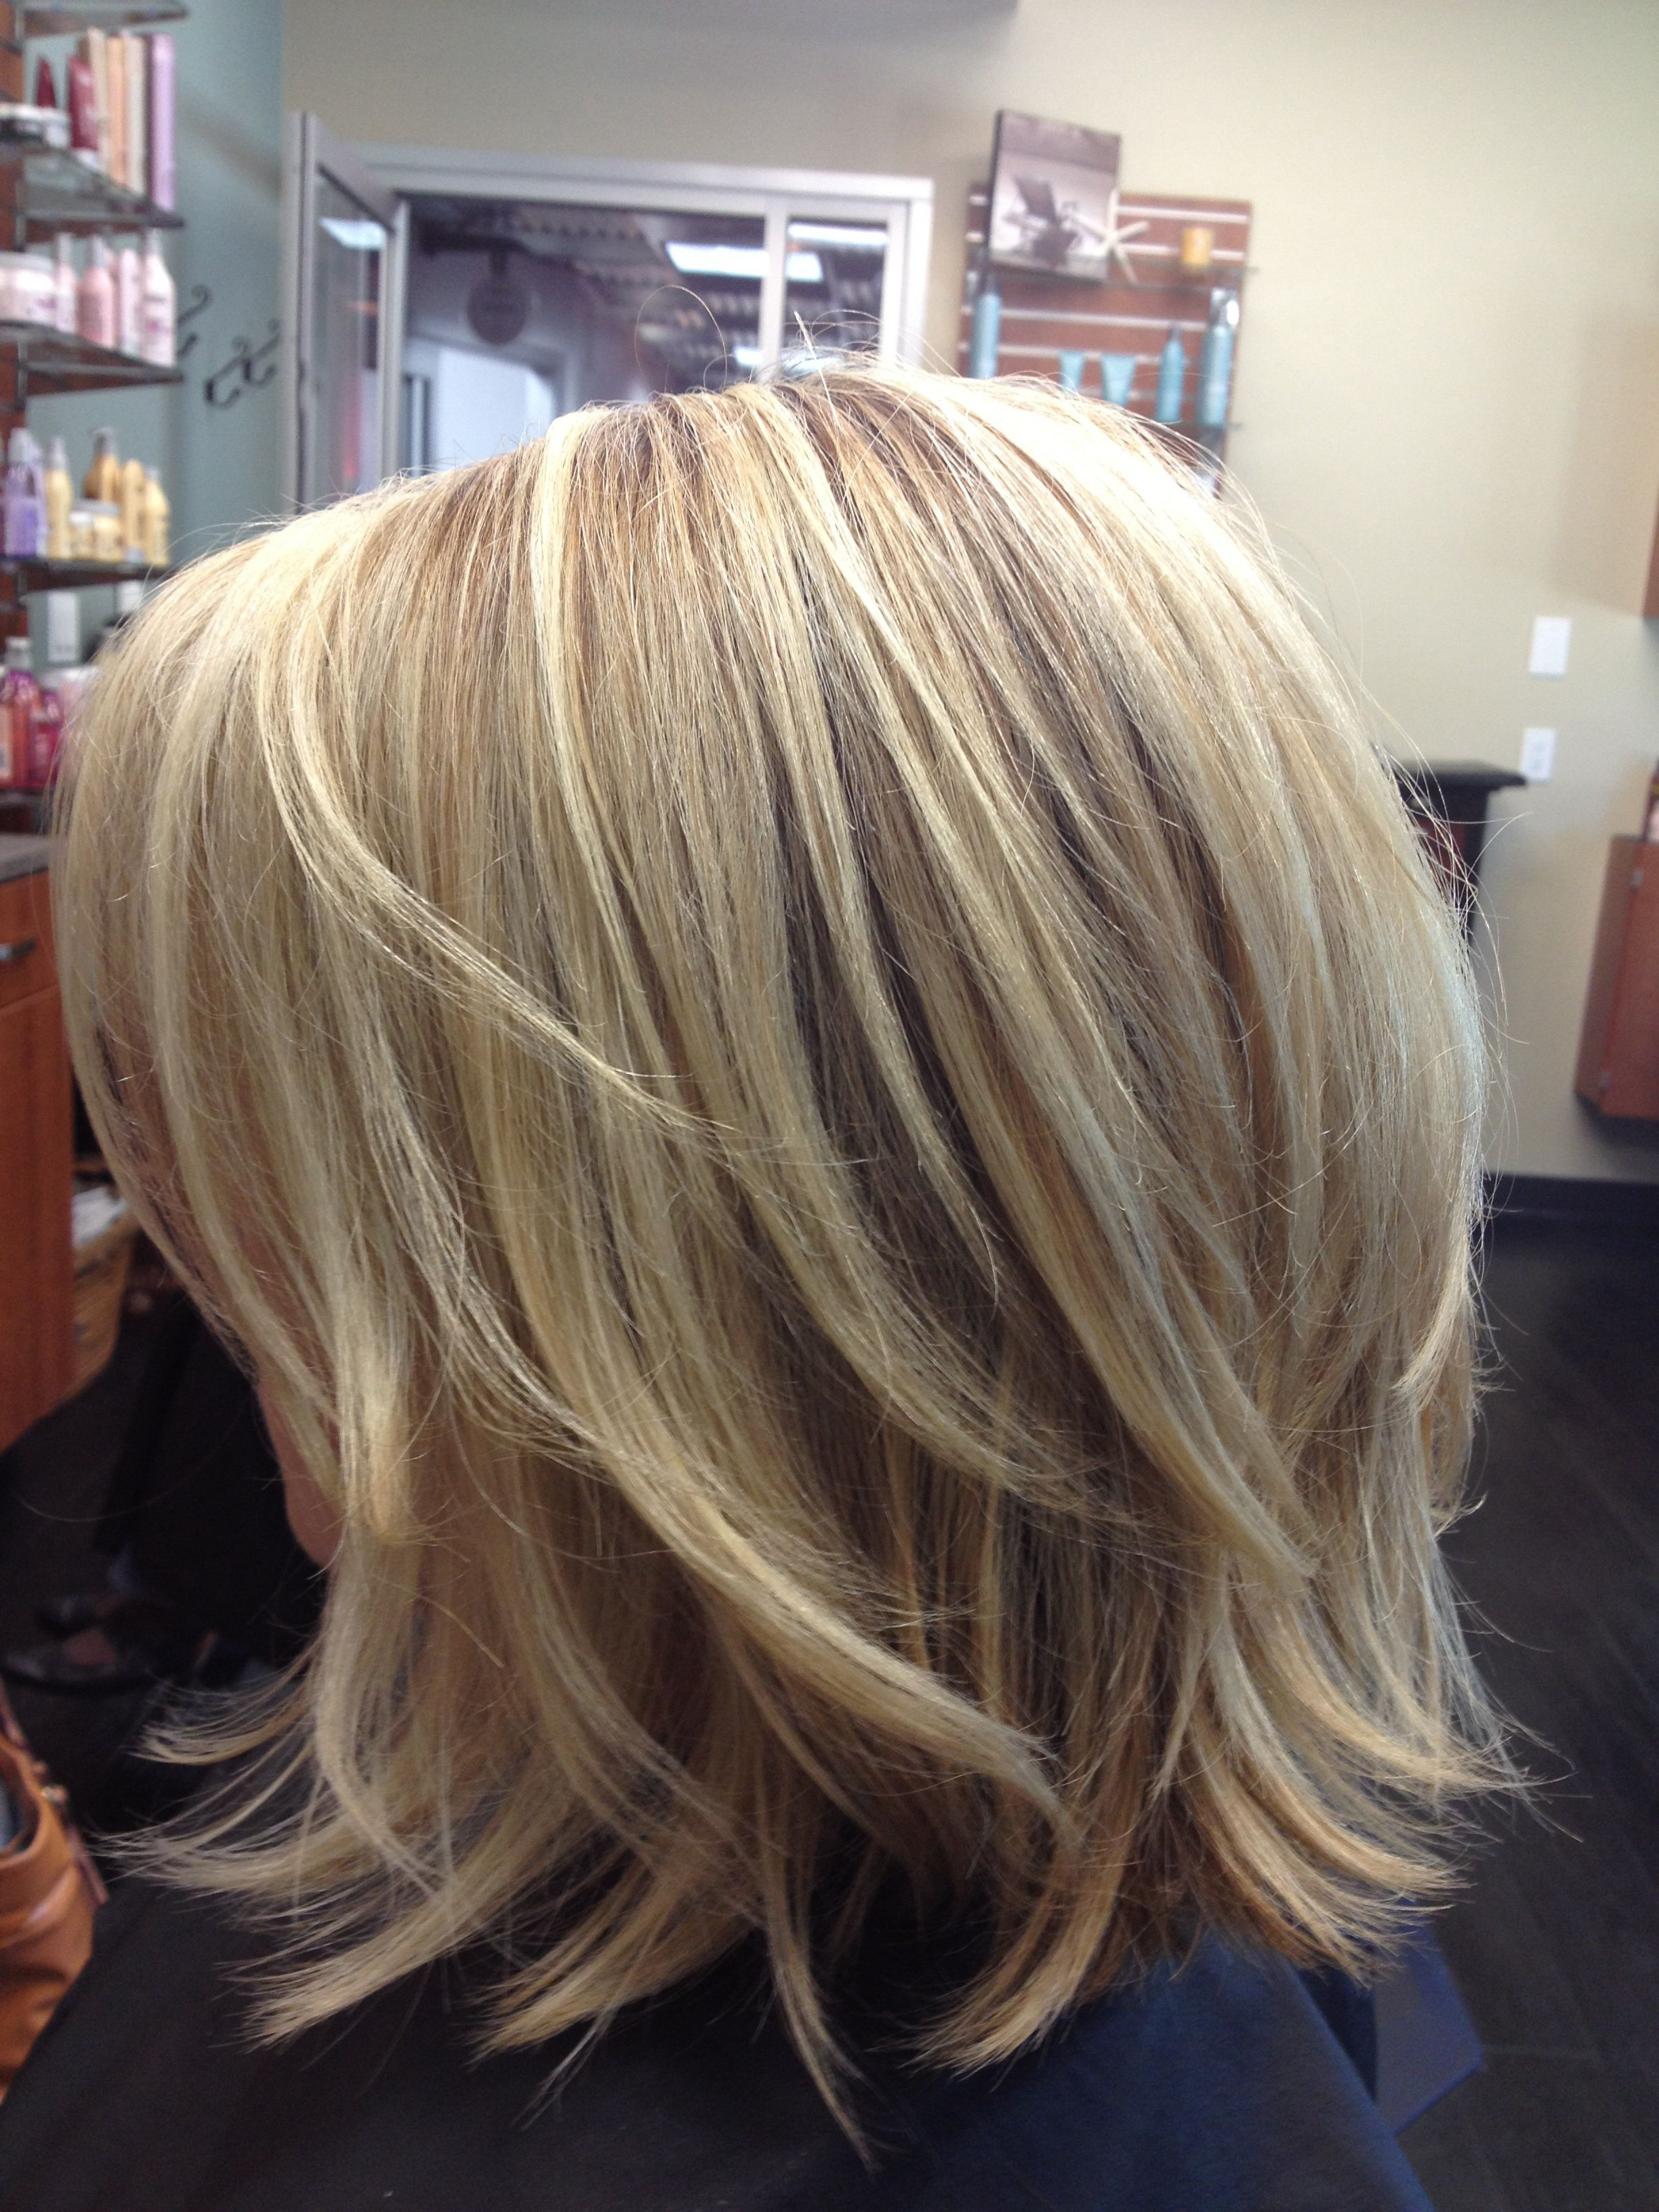 Hairstyles : Chic Medium Shag Hairstyles Eye Popping 14 Trendy Regarding Well Known Straight And Chic Long Layers Hairstyles (View 15 of 20)